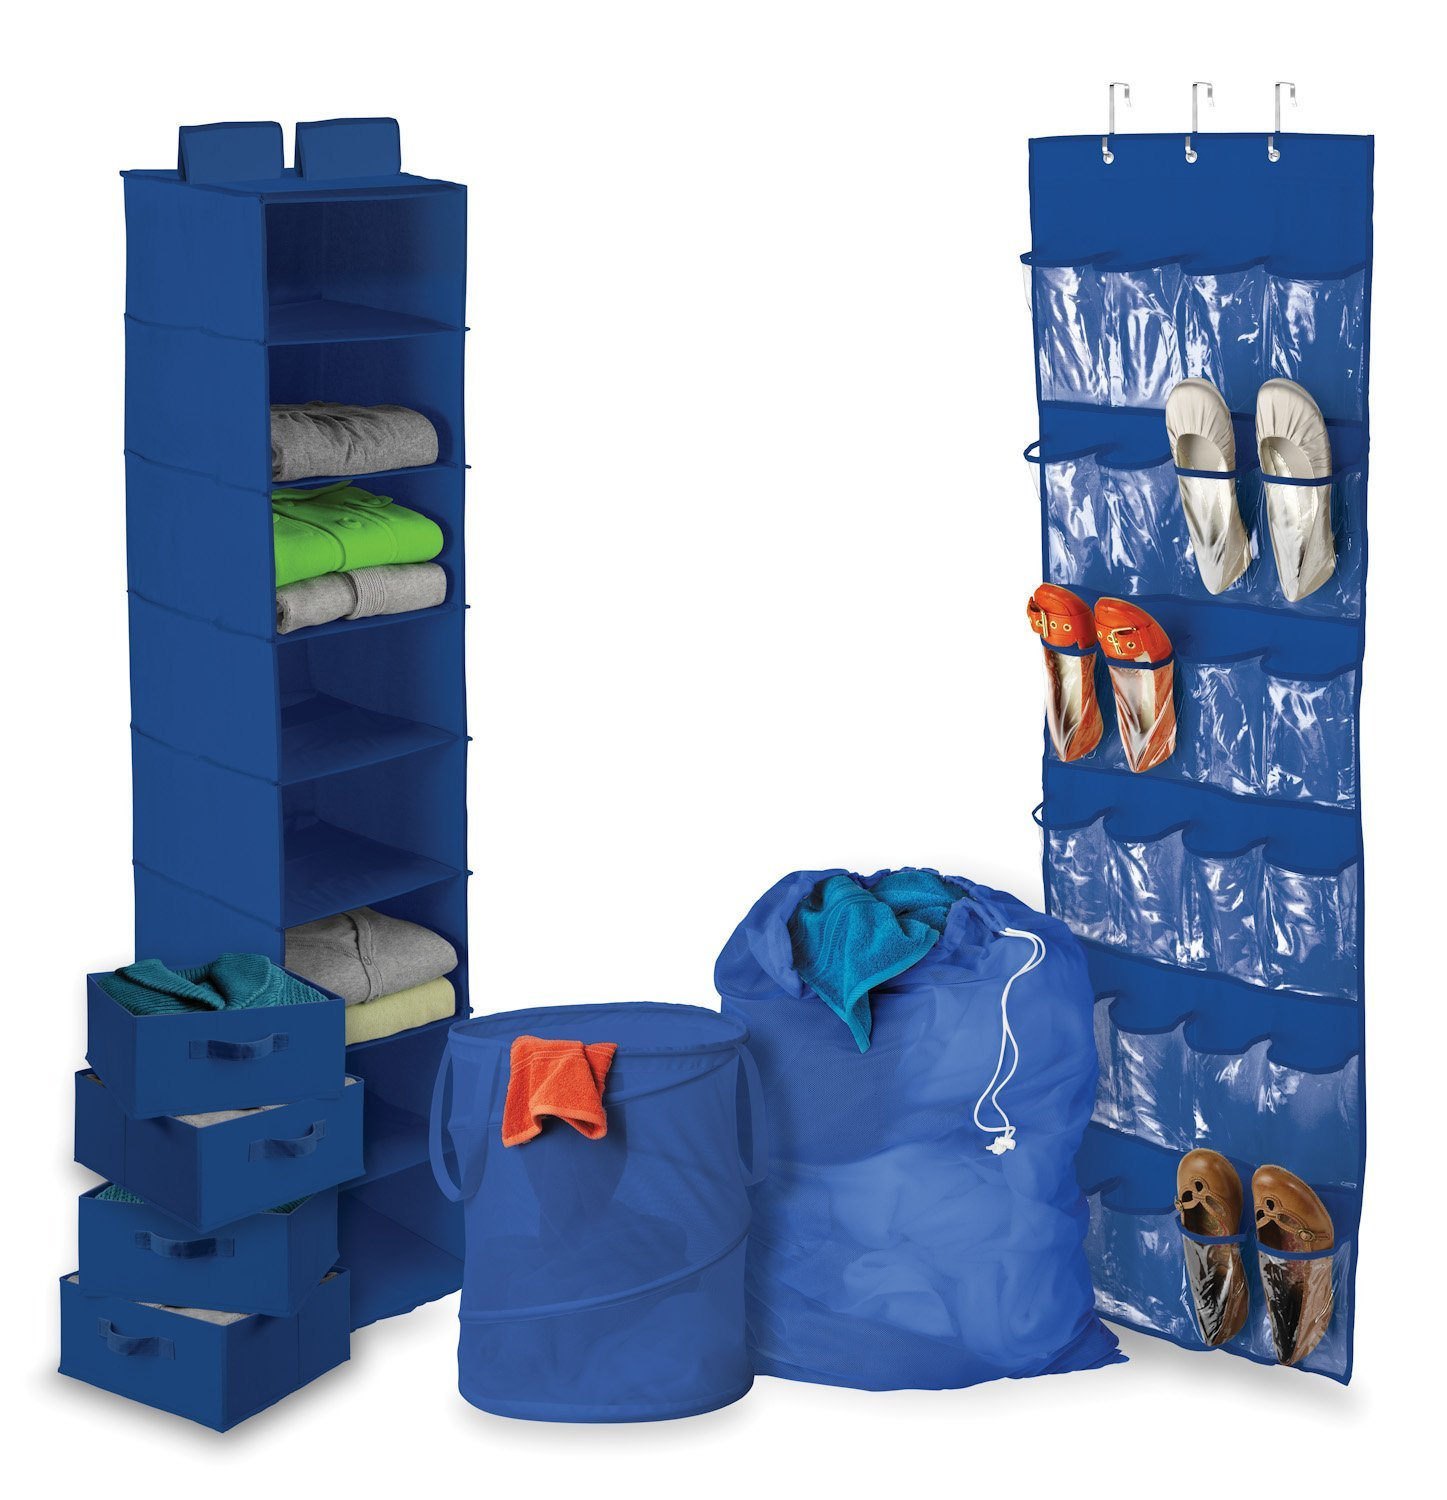 Virtual Dorm Room Design: 8 Piece Ultimate Dorm Organization Set By Honey-Can-Do